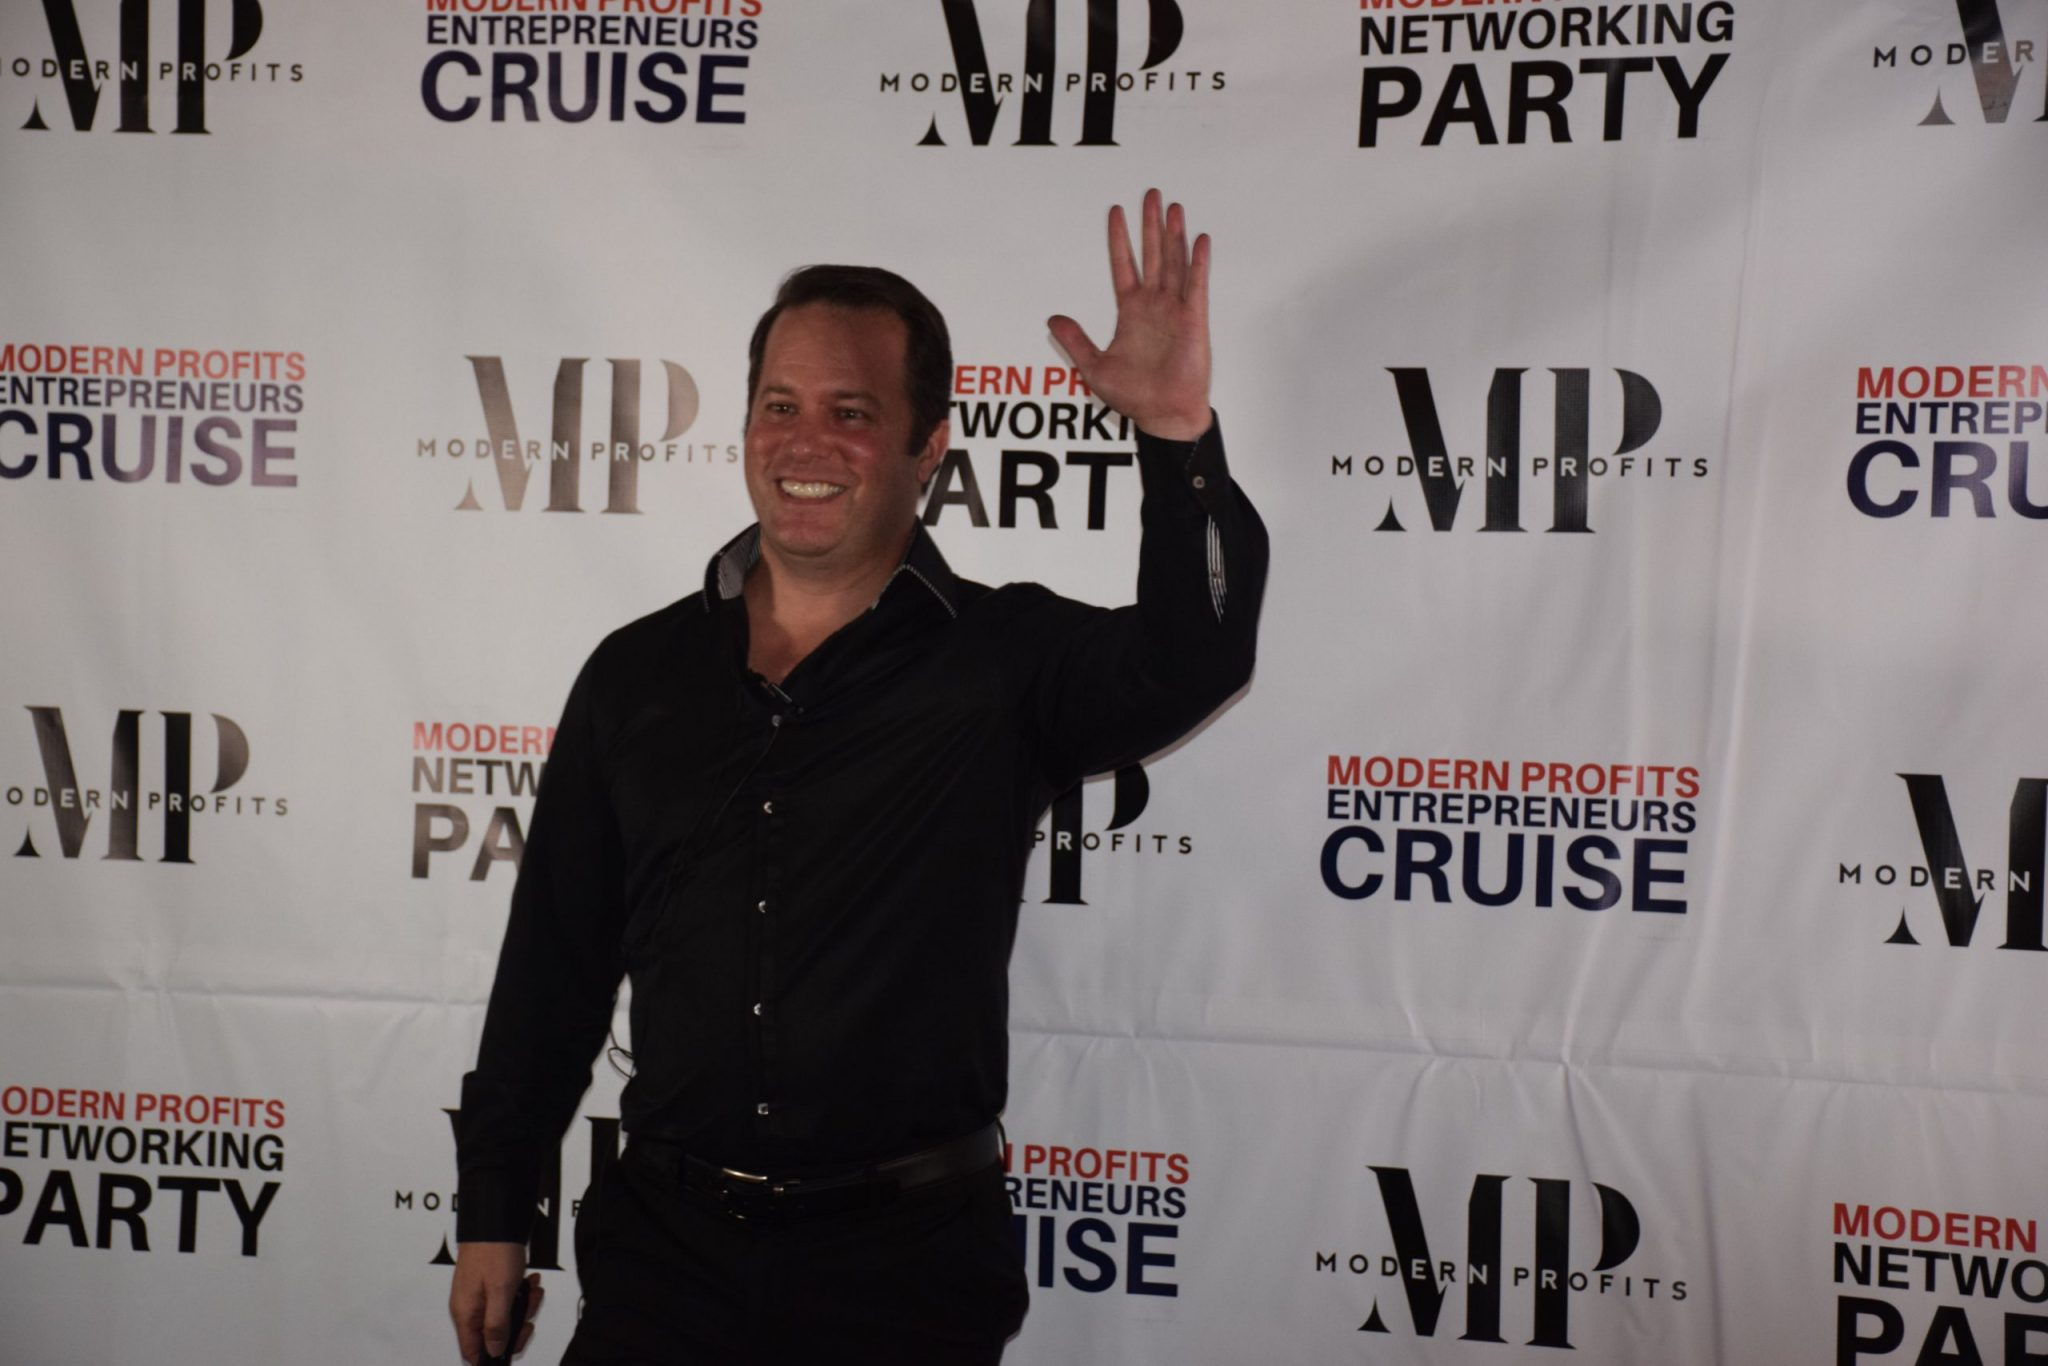 Ross B. Williams to host Modern Profits Networking Party before major sales funnel marketing conference in Orlando.